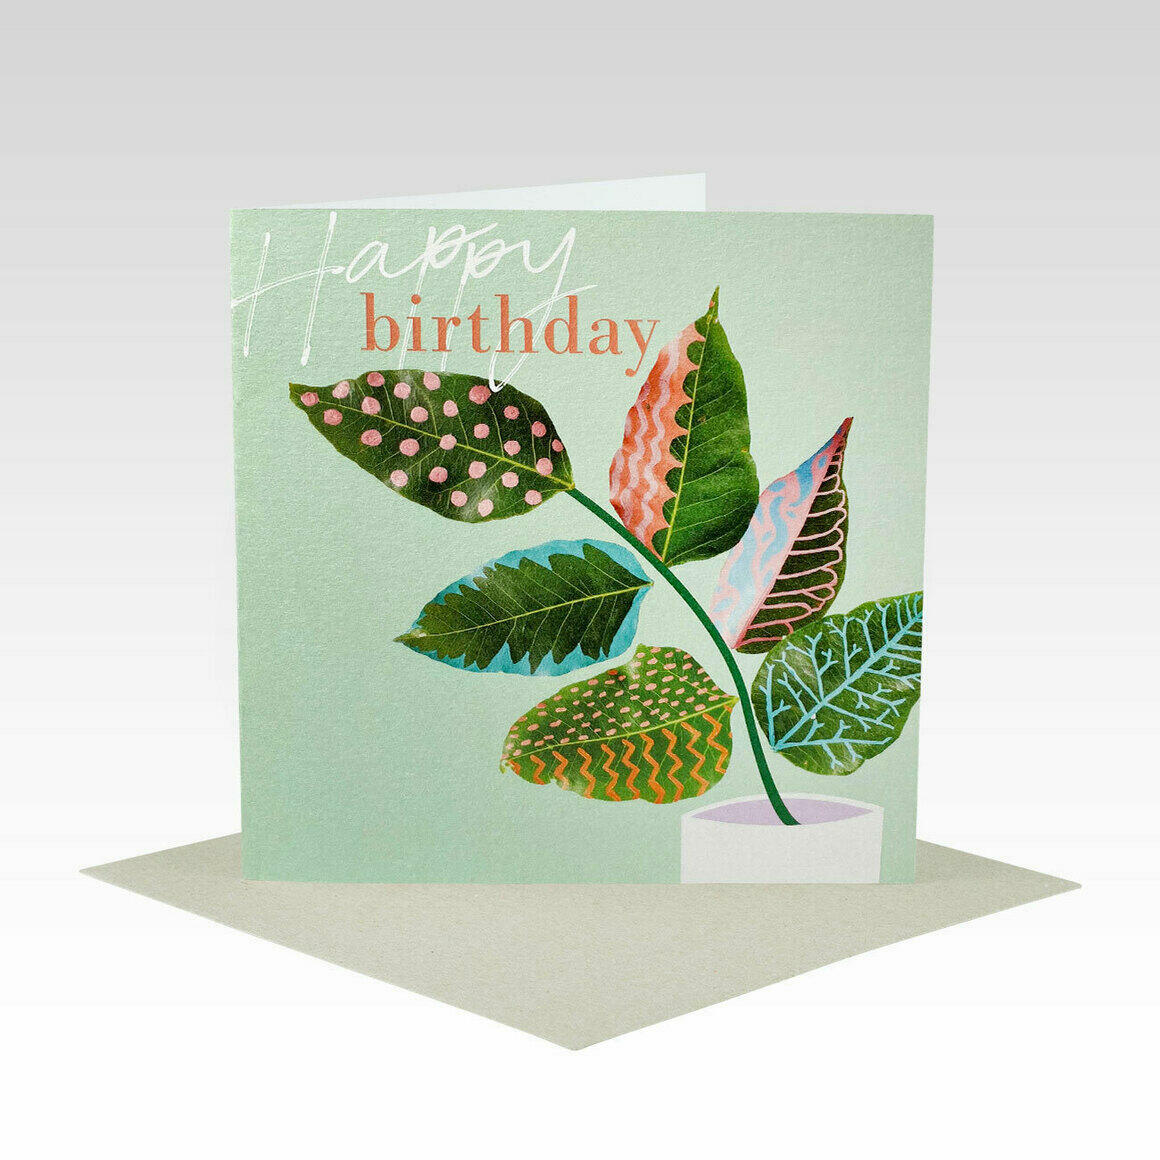 HB081 – Happy Birthday Painted Leaves   Trada Marketplace